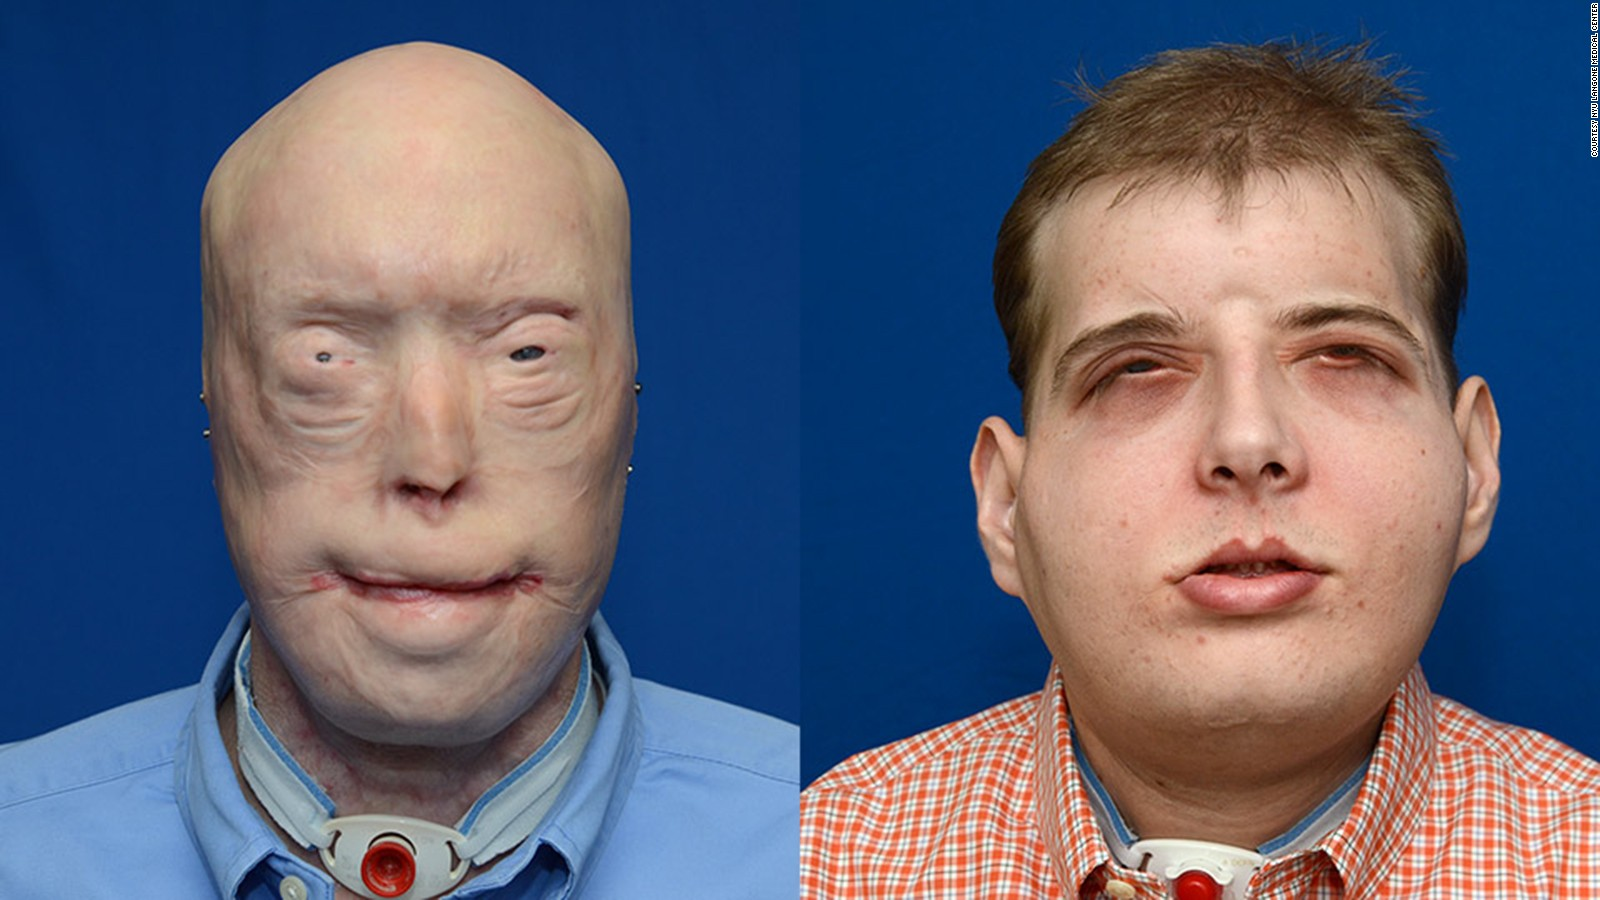 World's first full face transplant picture